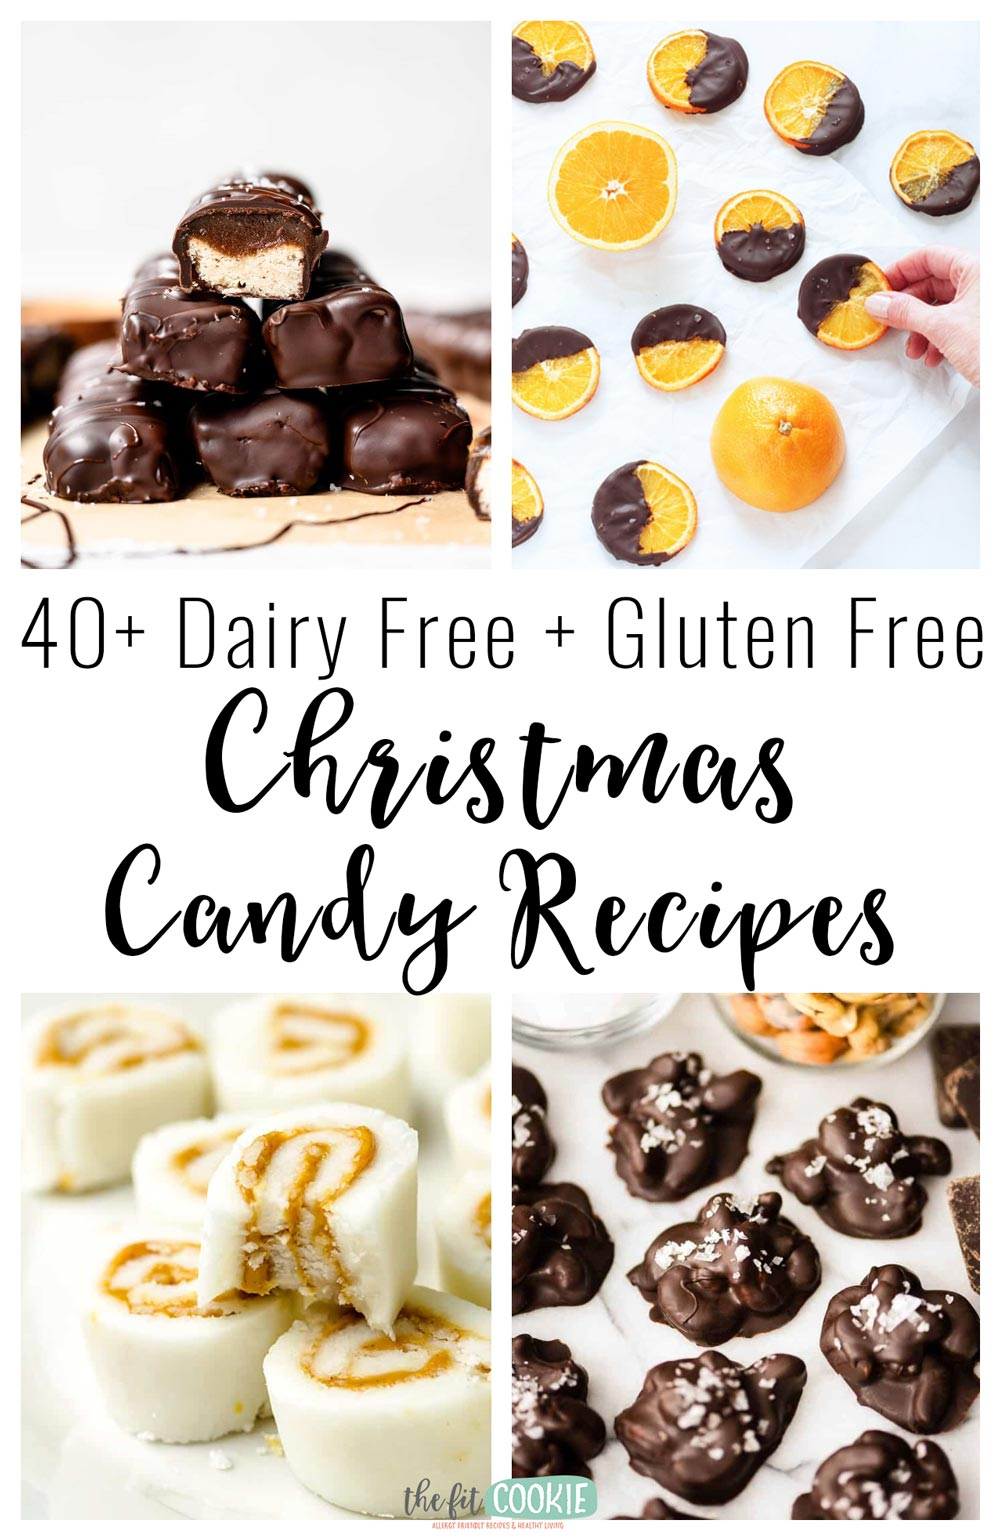 image collage of various gluten free dairy free christmas candies